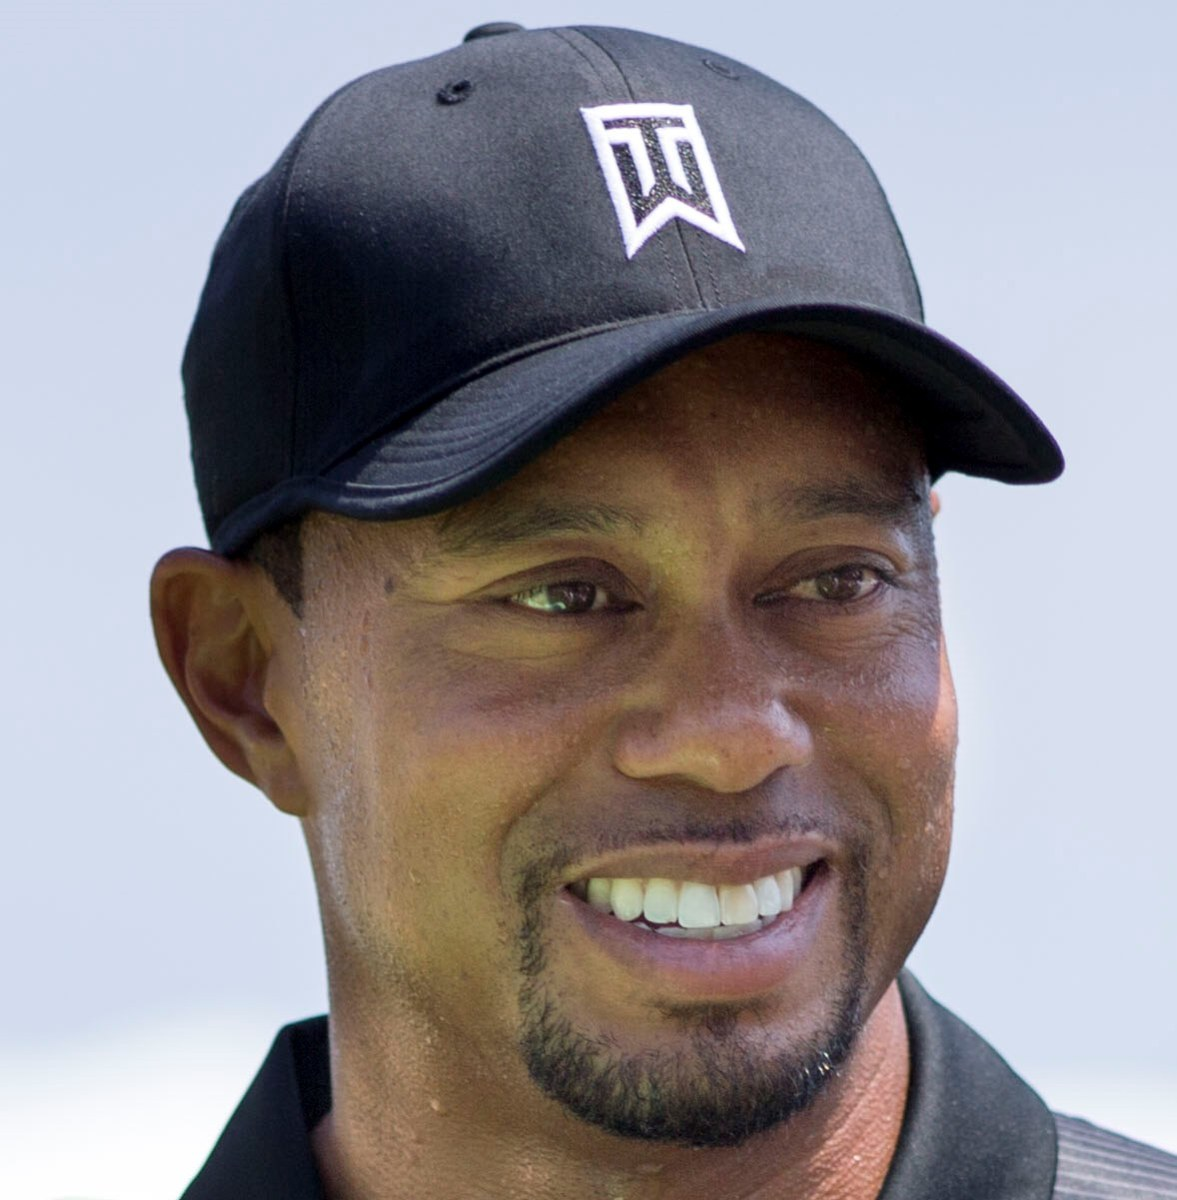 Tiger Woods: born December 30th 1975